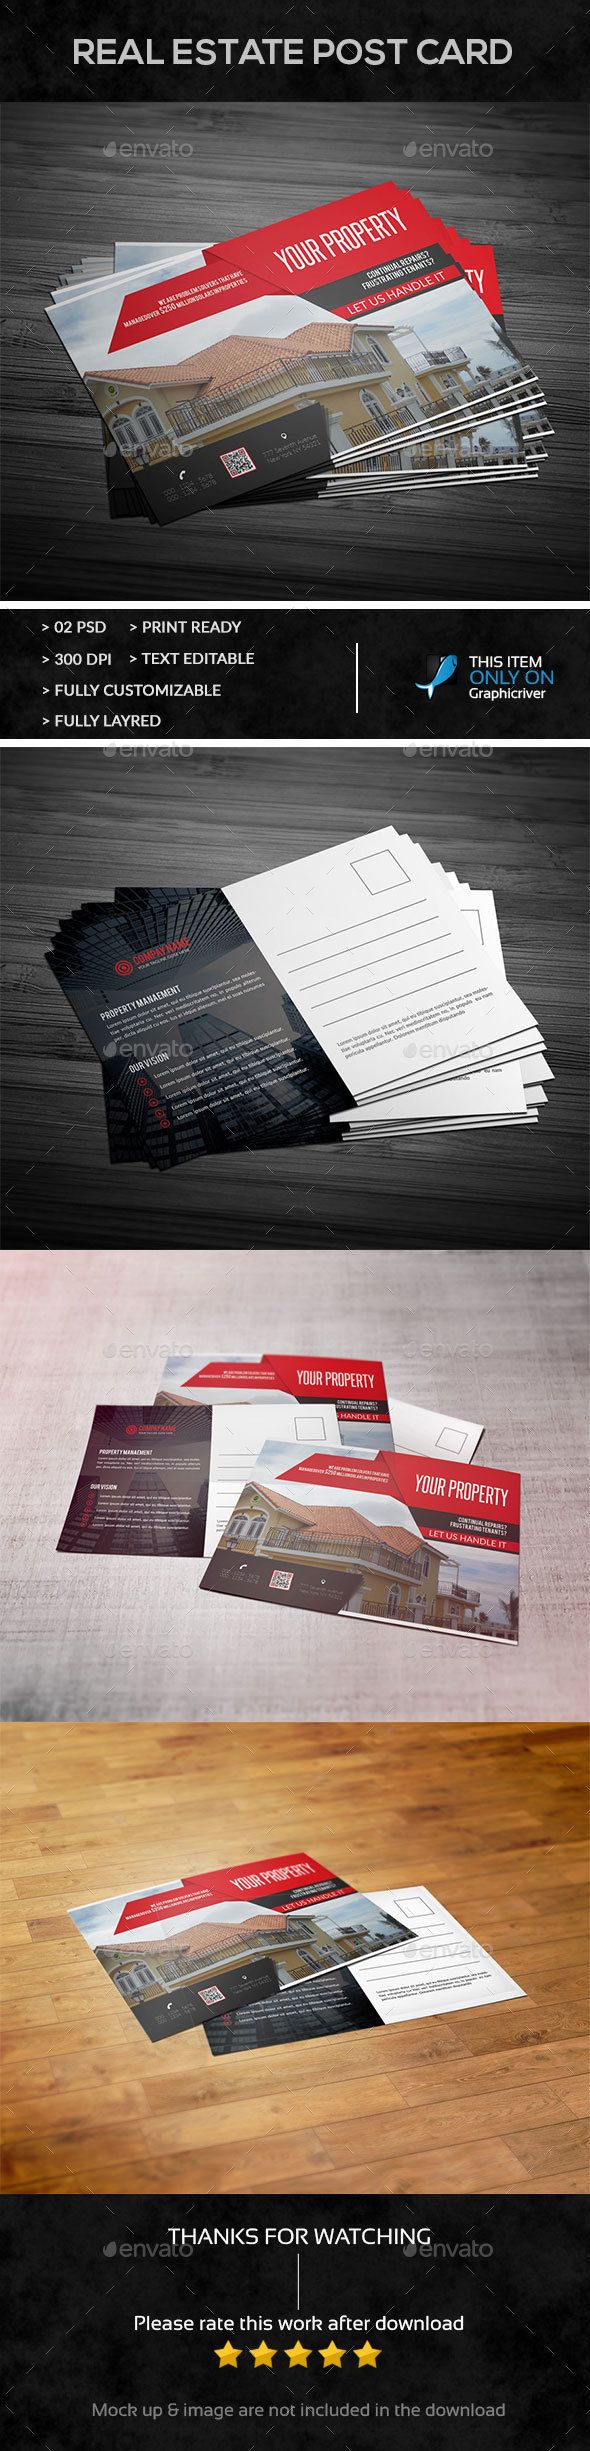 Real Estate Post Card - Cards & Invites Print Templates